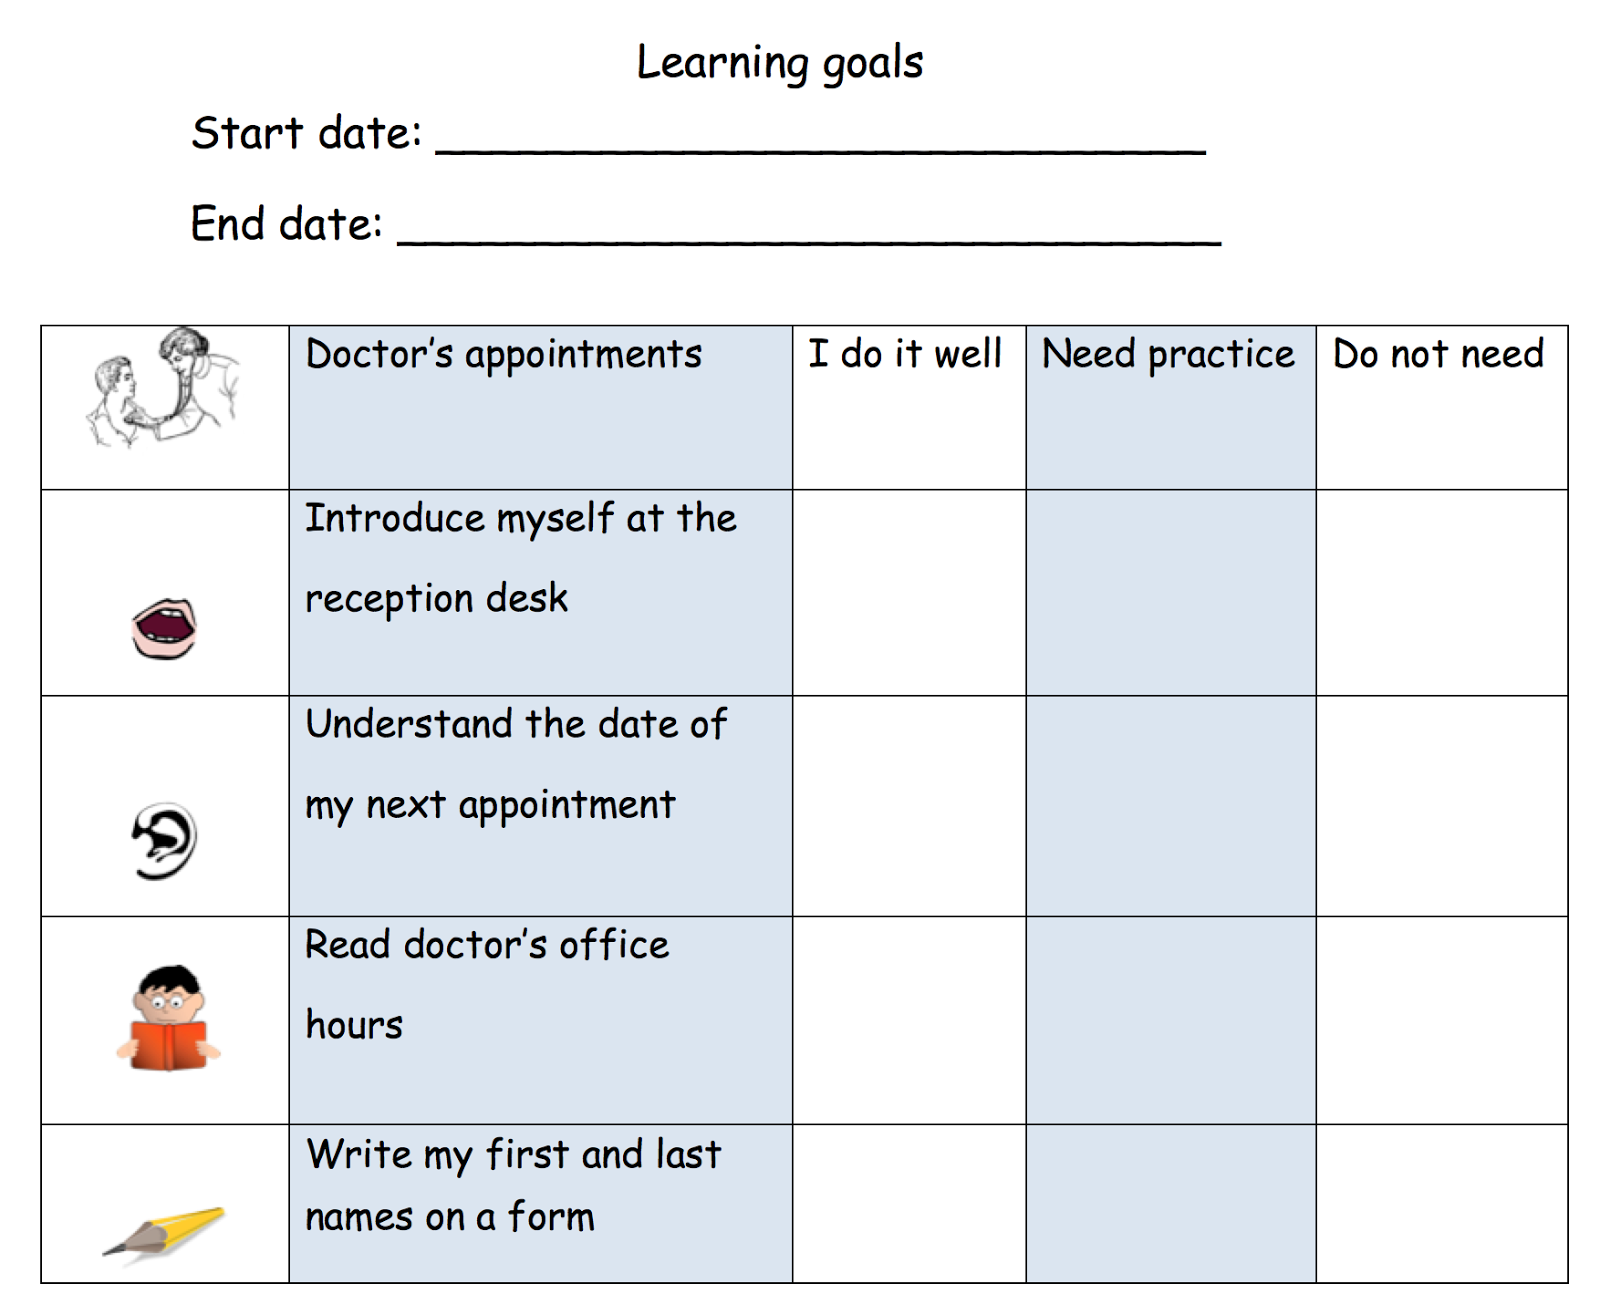 teachlearnesl goal setting for learning management in adult esl i make a small list of possible goals that are achievable short term and relevant to the learner s level of literacy and language proficiency